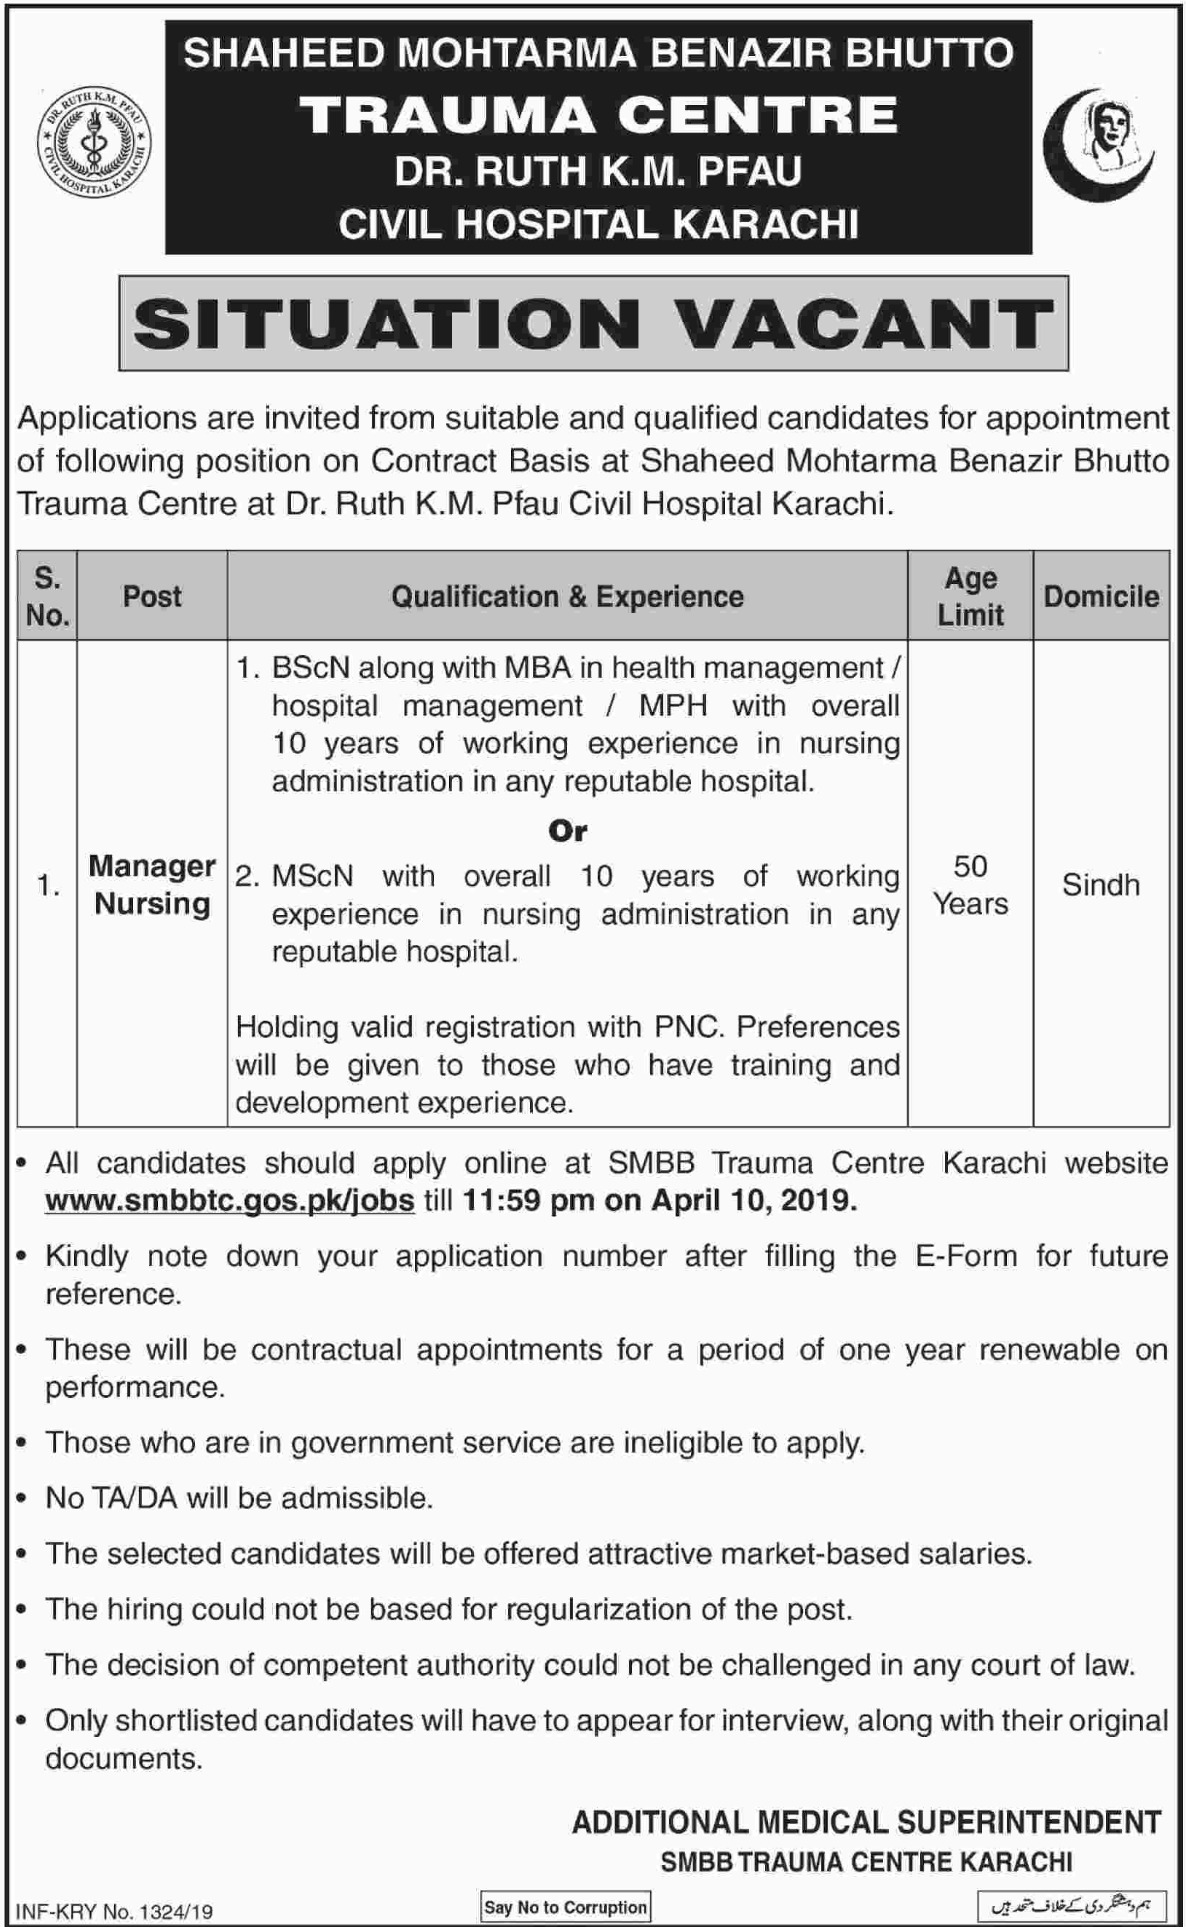 Civil Hospital Karachi Jobs 2019 Sindh Latest